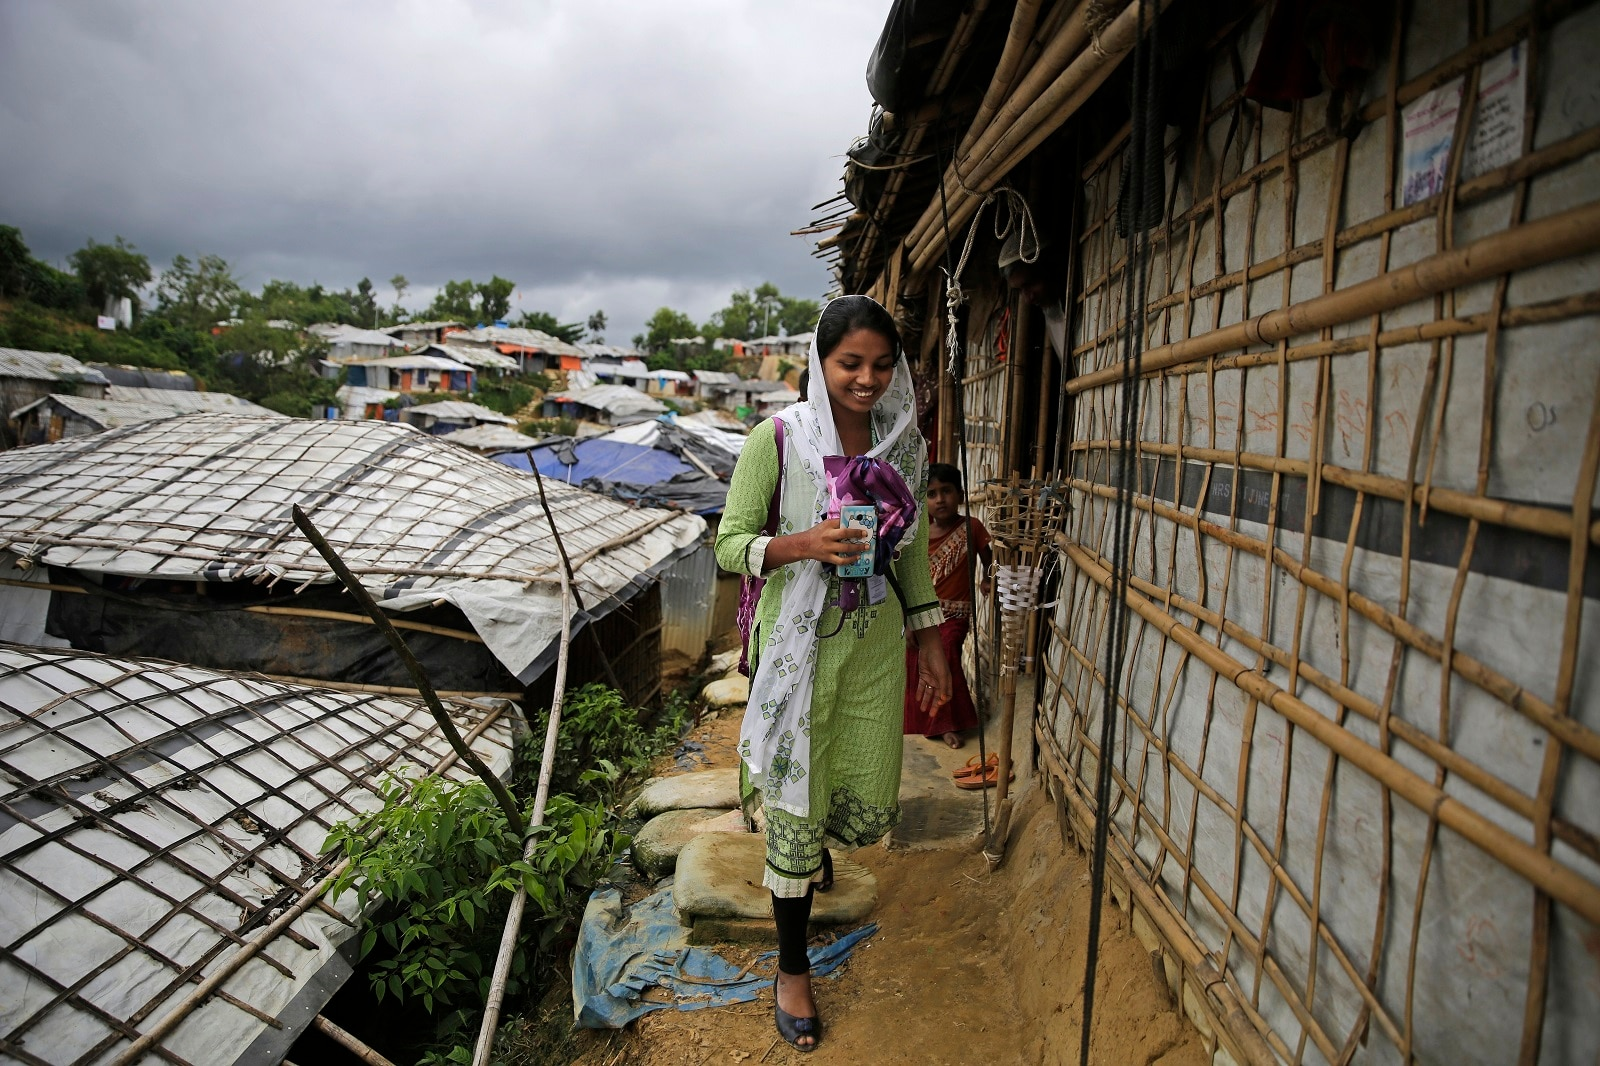 Rahima Akter walks through Balukhali refugee camp in Bangladesh. Rahima is a 19-year-old refugee who dreams of becoming the most educated Rohingya woman in the world. She recently finished high school and hopes to study human rights in college. (AP Photo/Altaf Qadri)